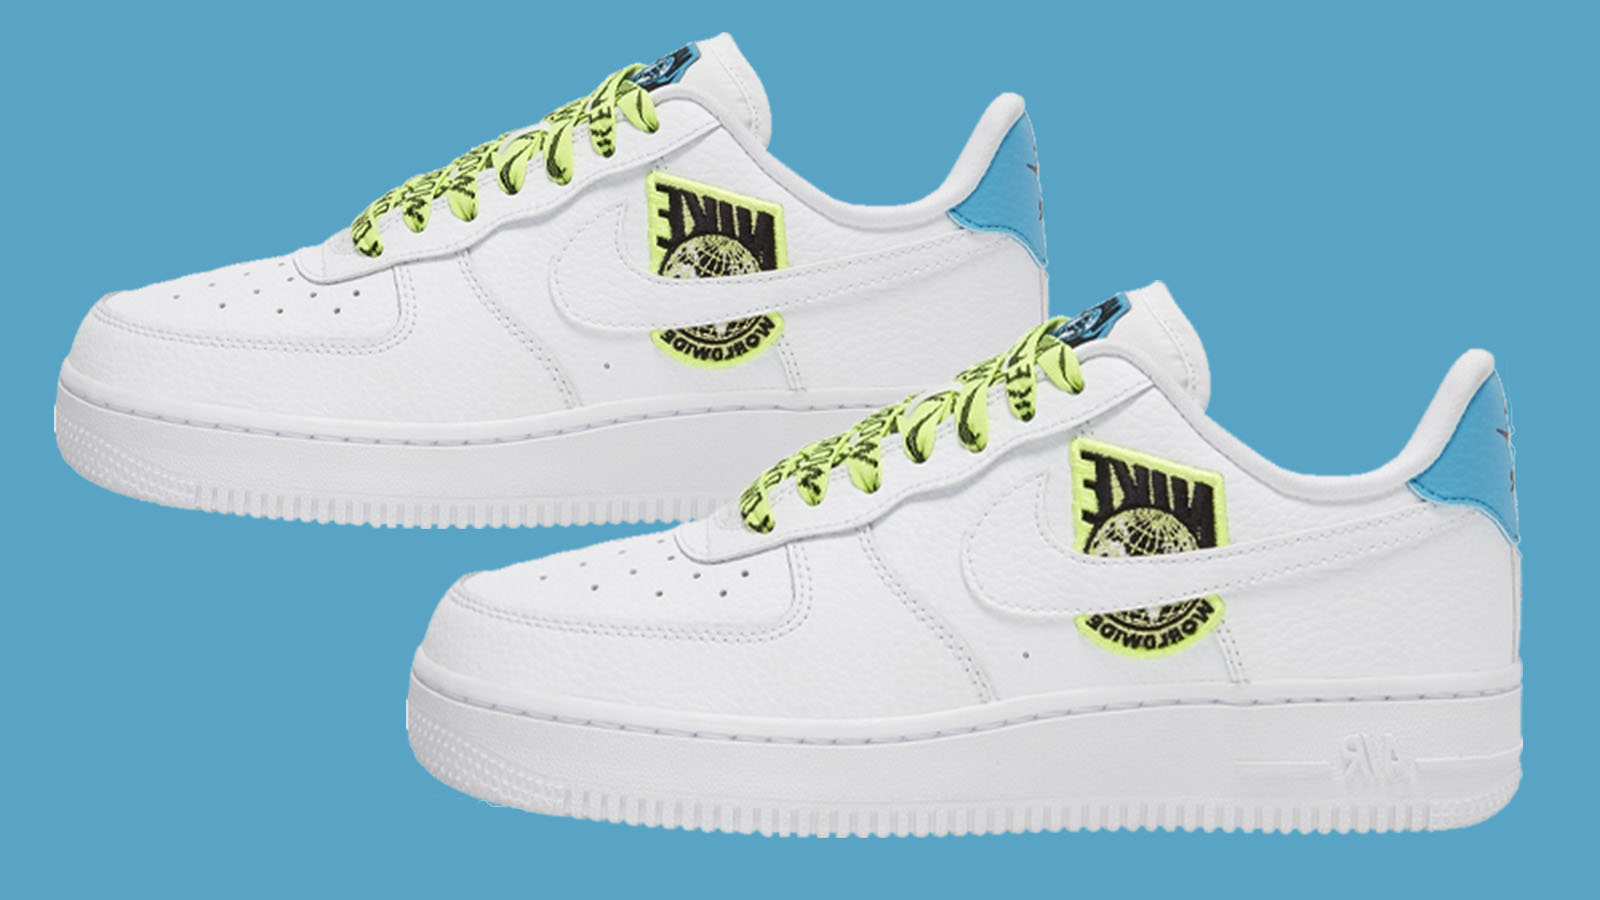 Regeneración inercia Todo el mundo  The Nike Air Force 1 07 SE 'Worldwide White Volt' Is Set To Be A Global Hit  | The Sole Womens